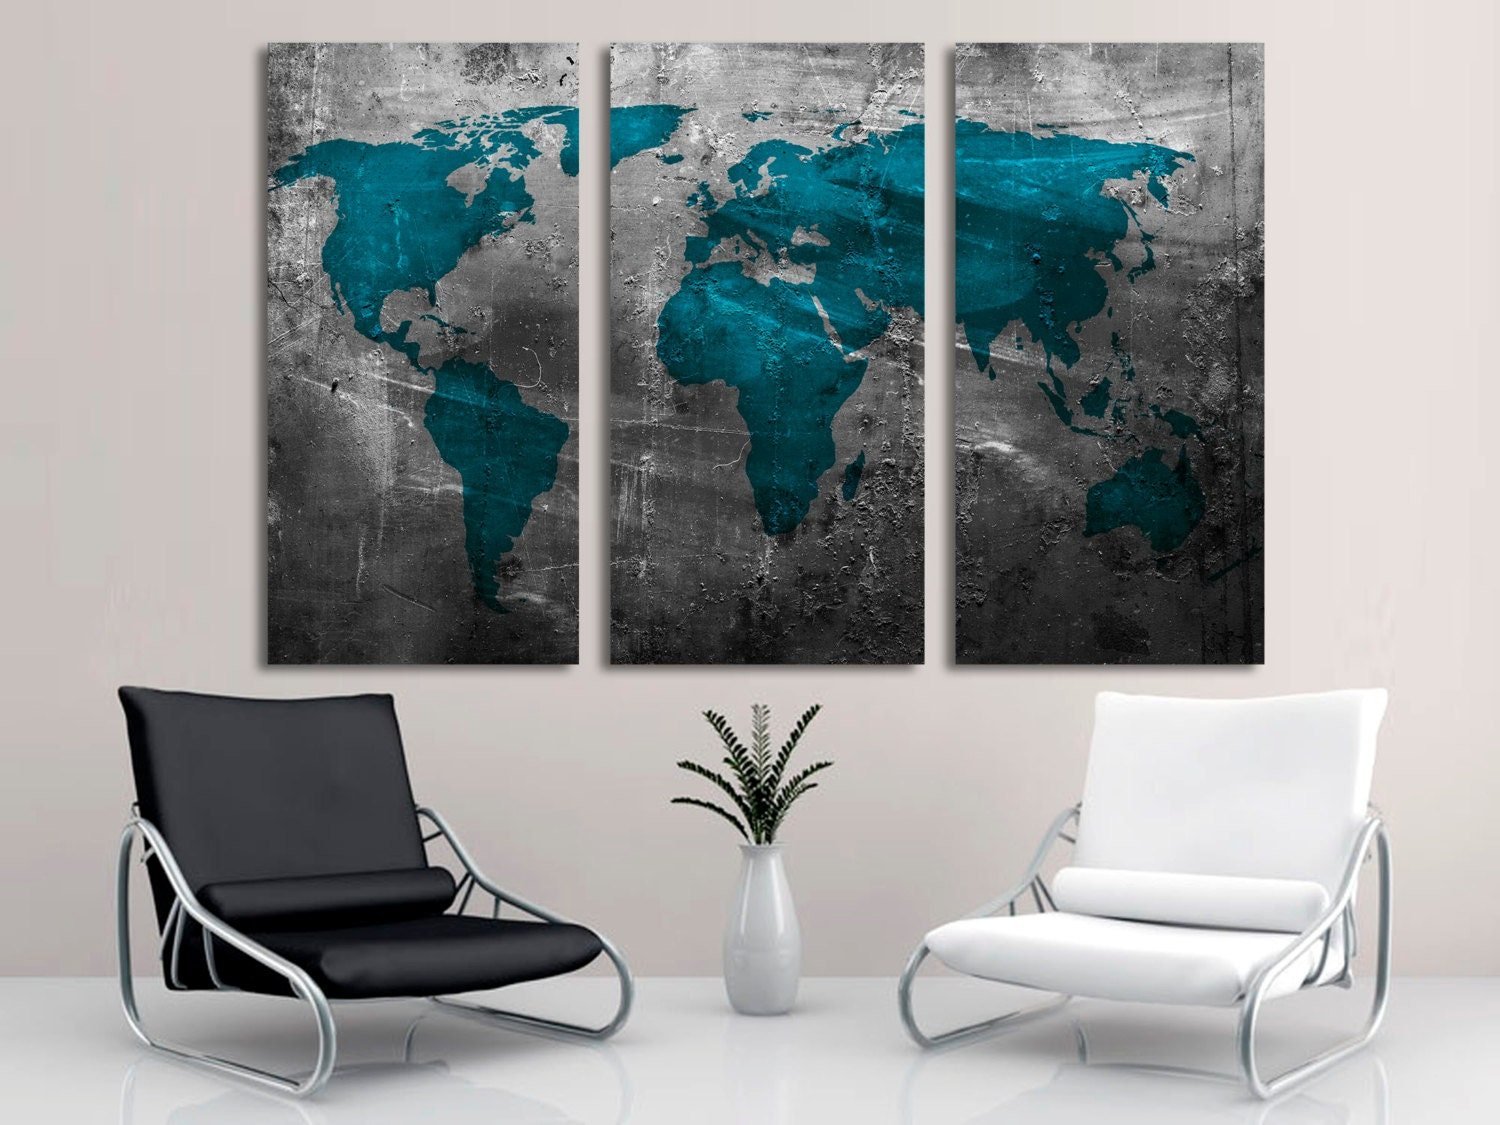 Abstract Teal World Map Canvas Print Wall Art